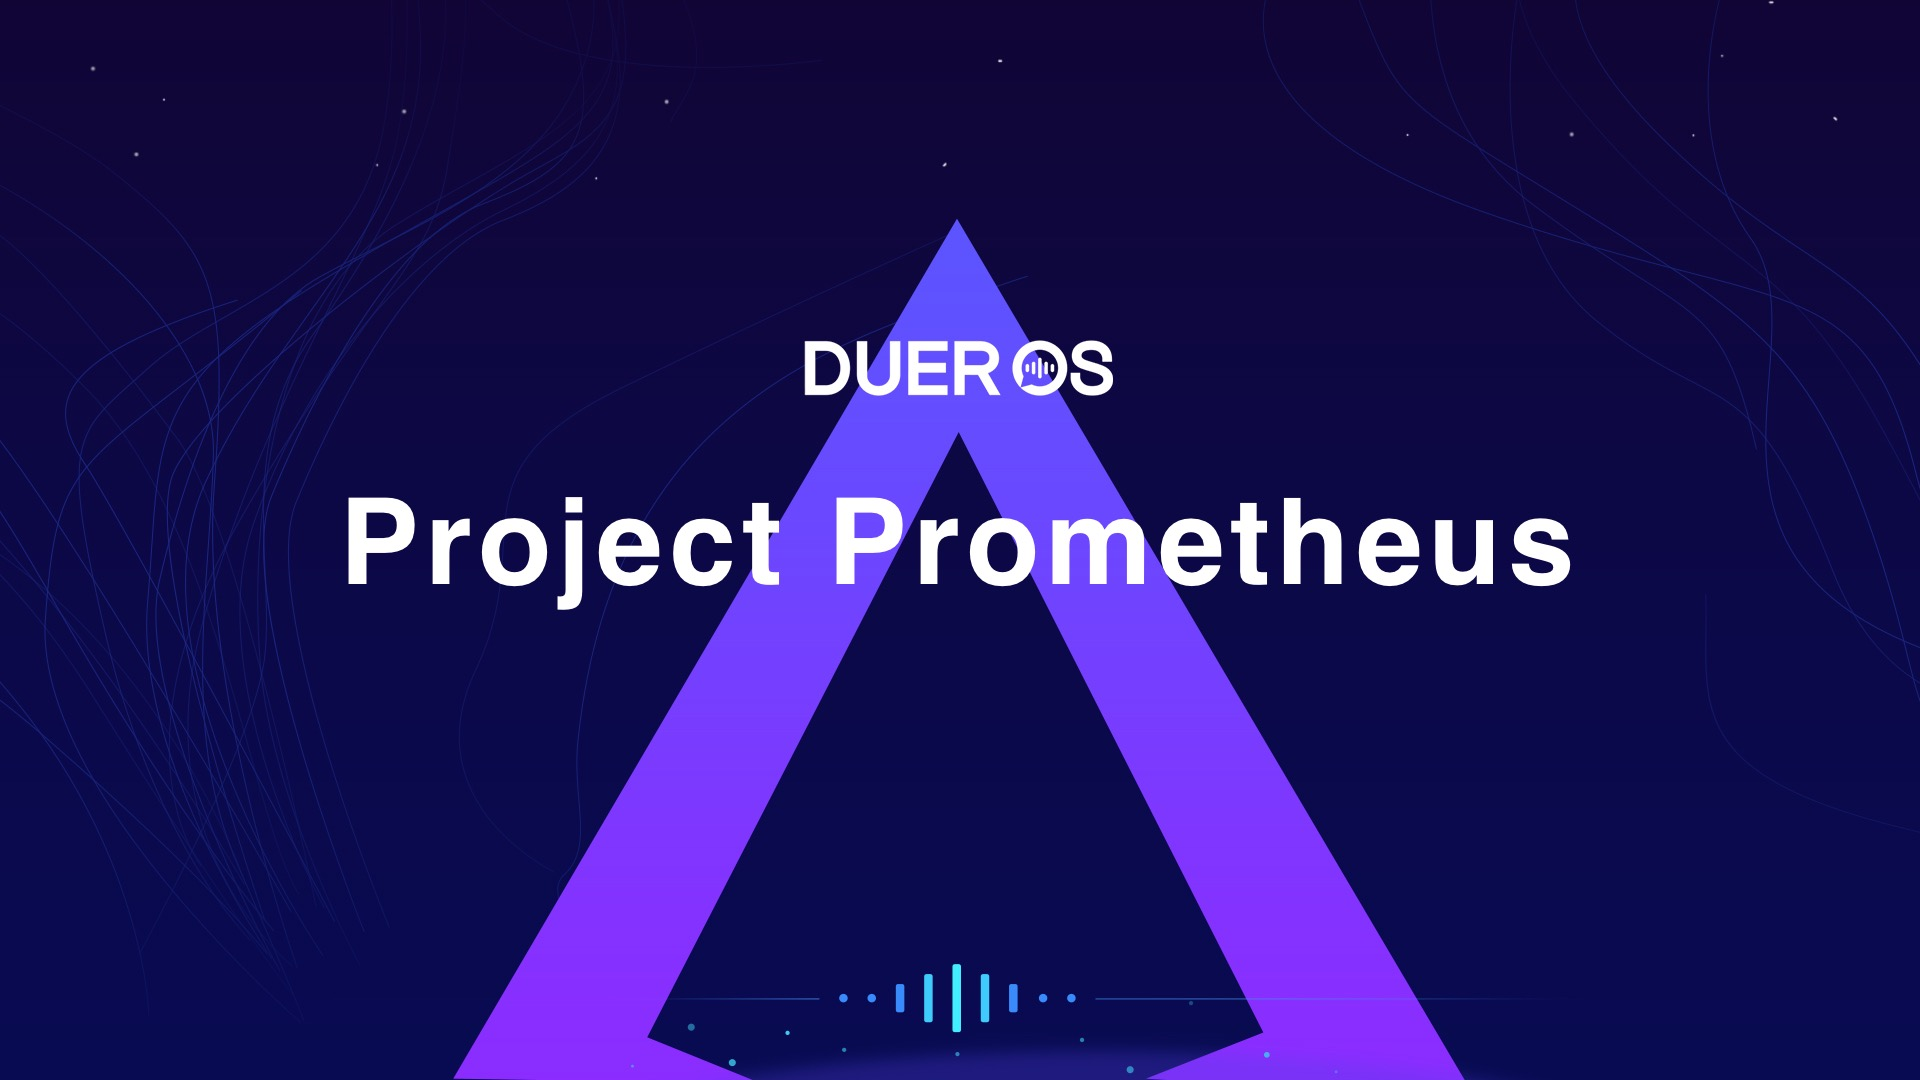 DuerOSProjectP